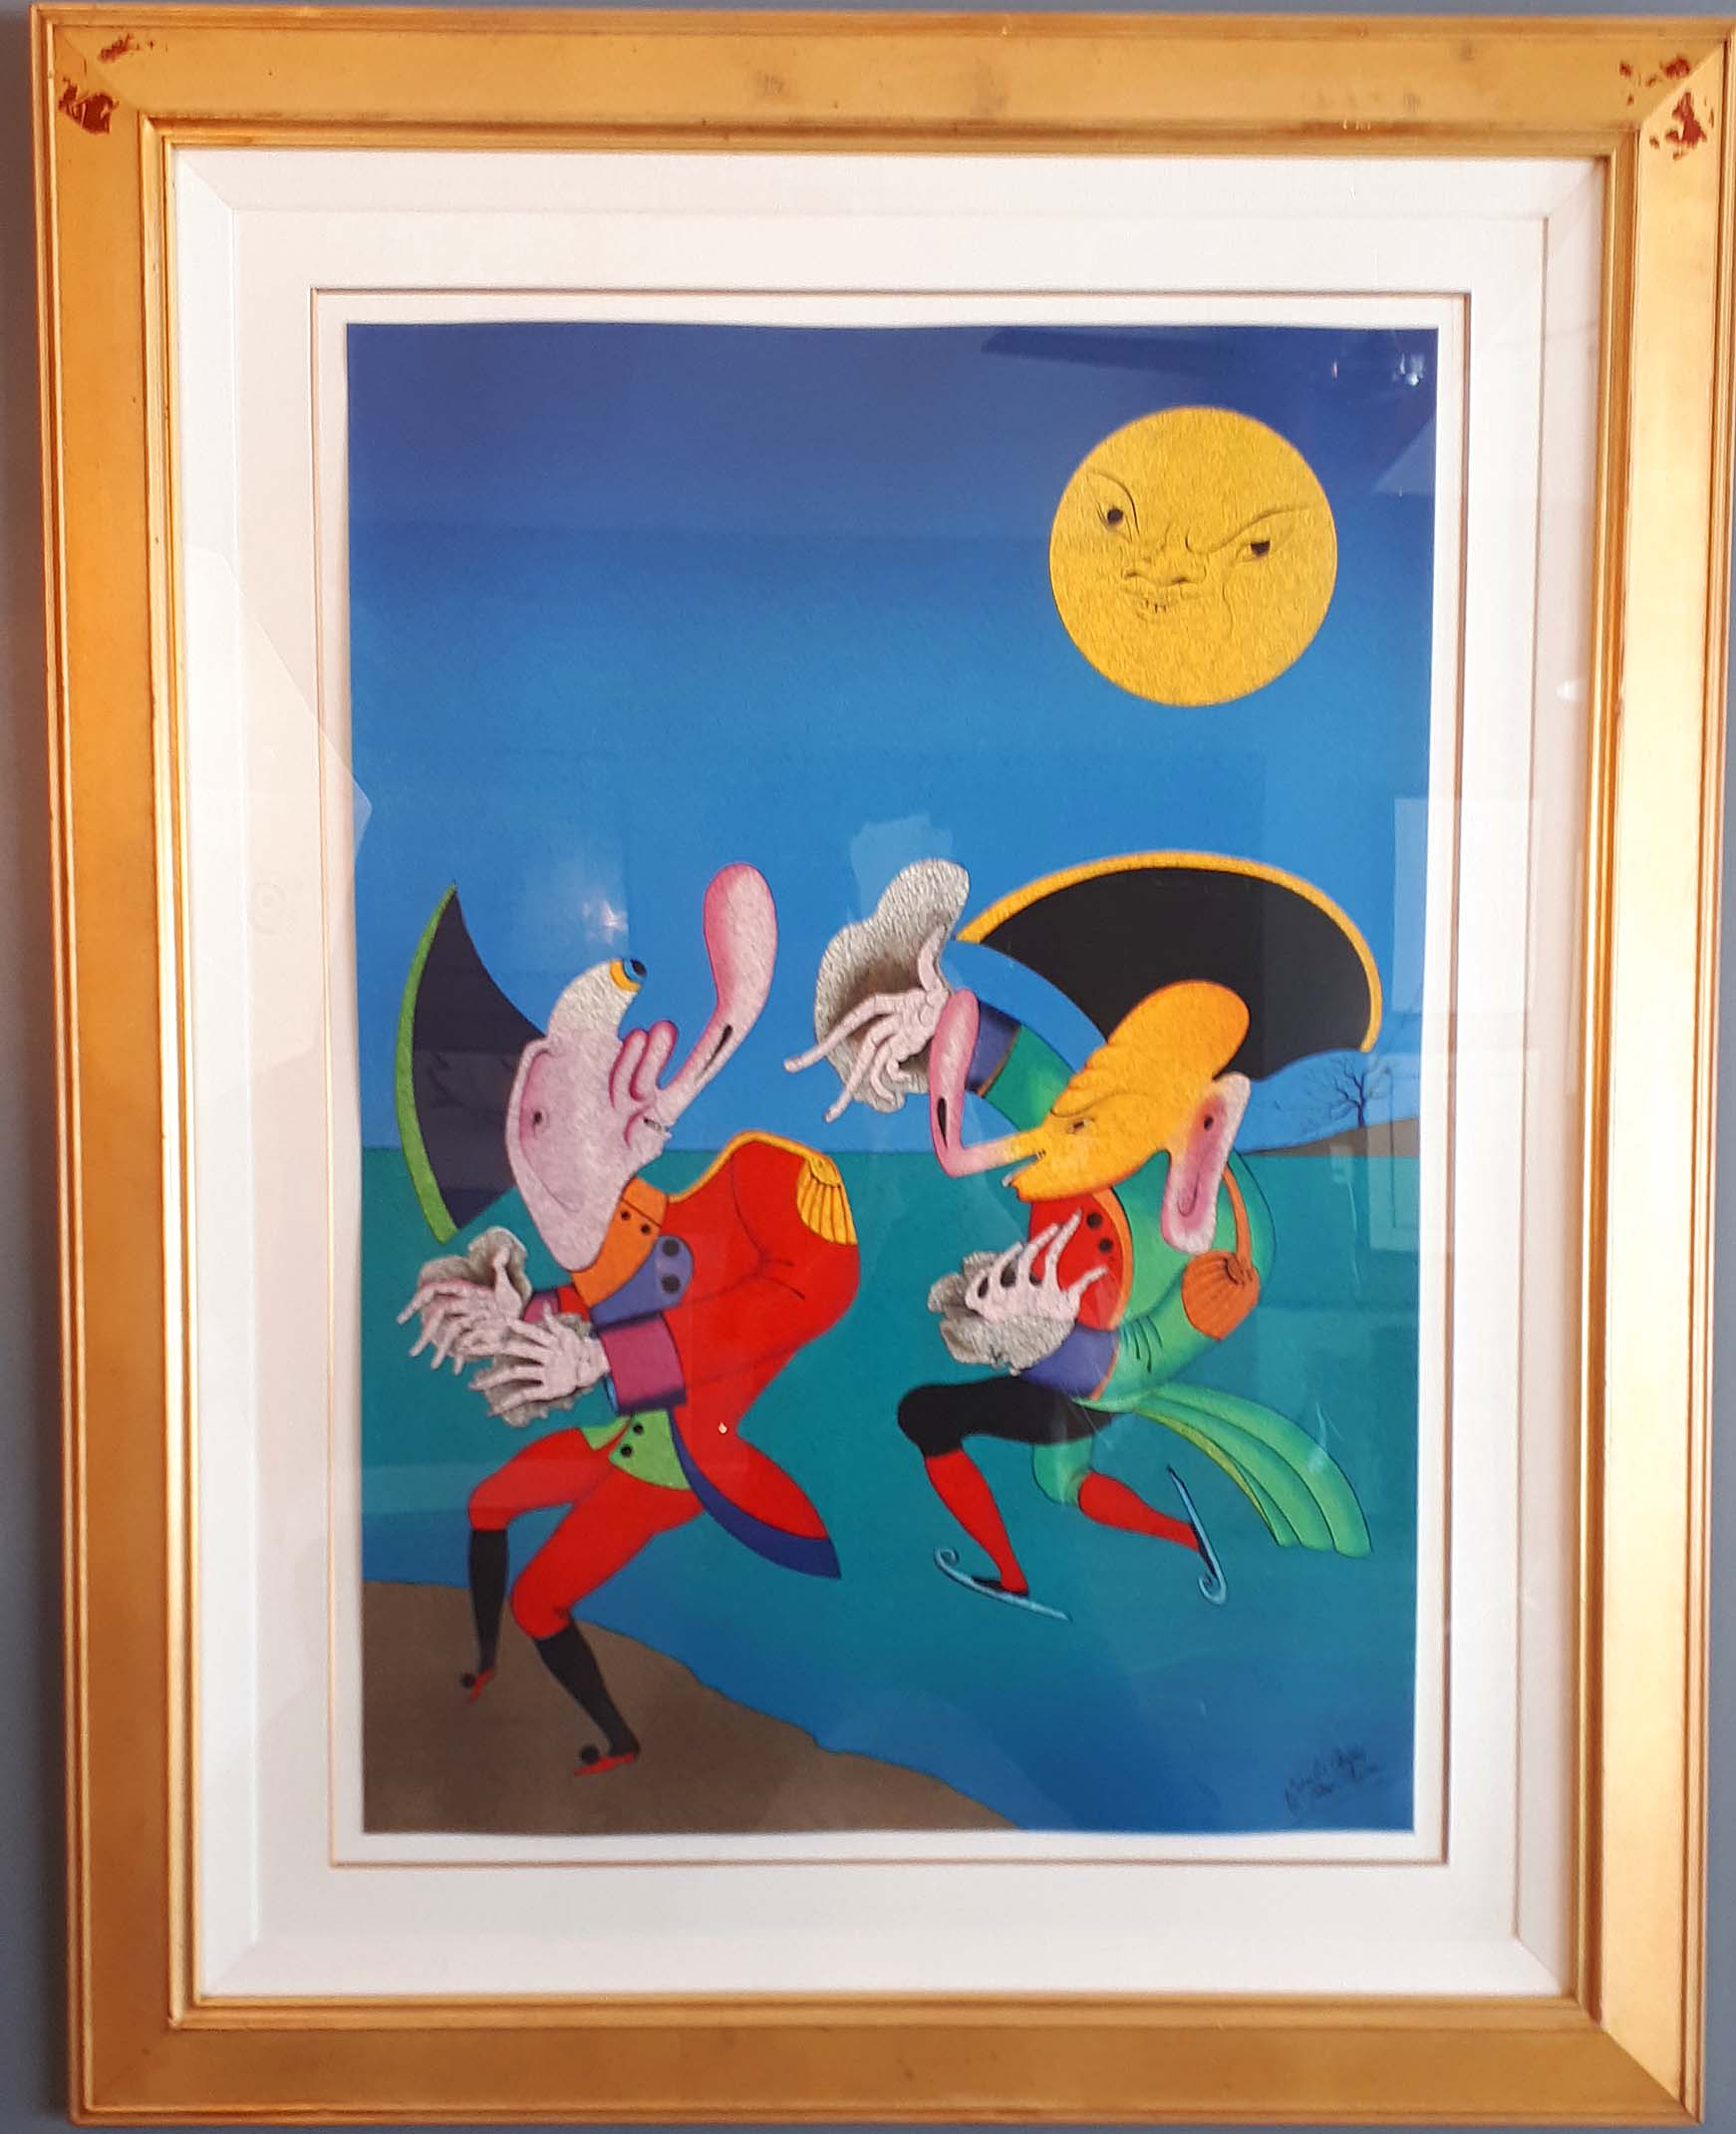 Mihail Chemaikin, Russia, Original Lithograph 117/195, Size: 40 x 51, One of Three, Est. Value 11,000.00 for the Set, Price: 3,500.00 for the set of three